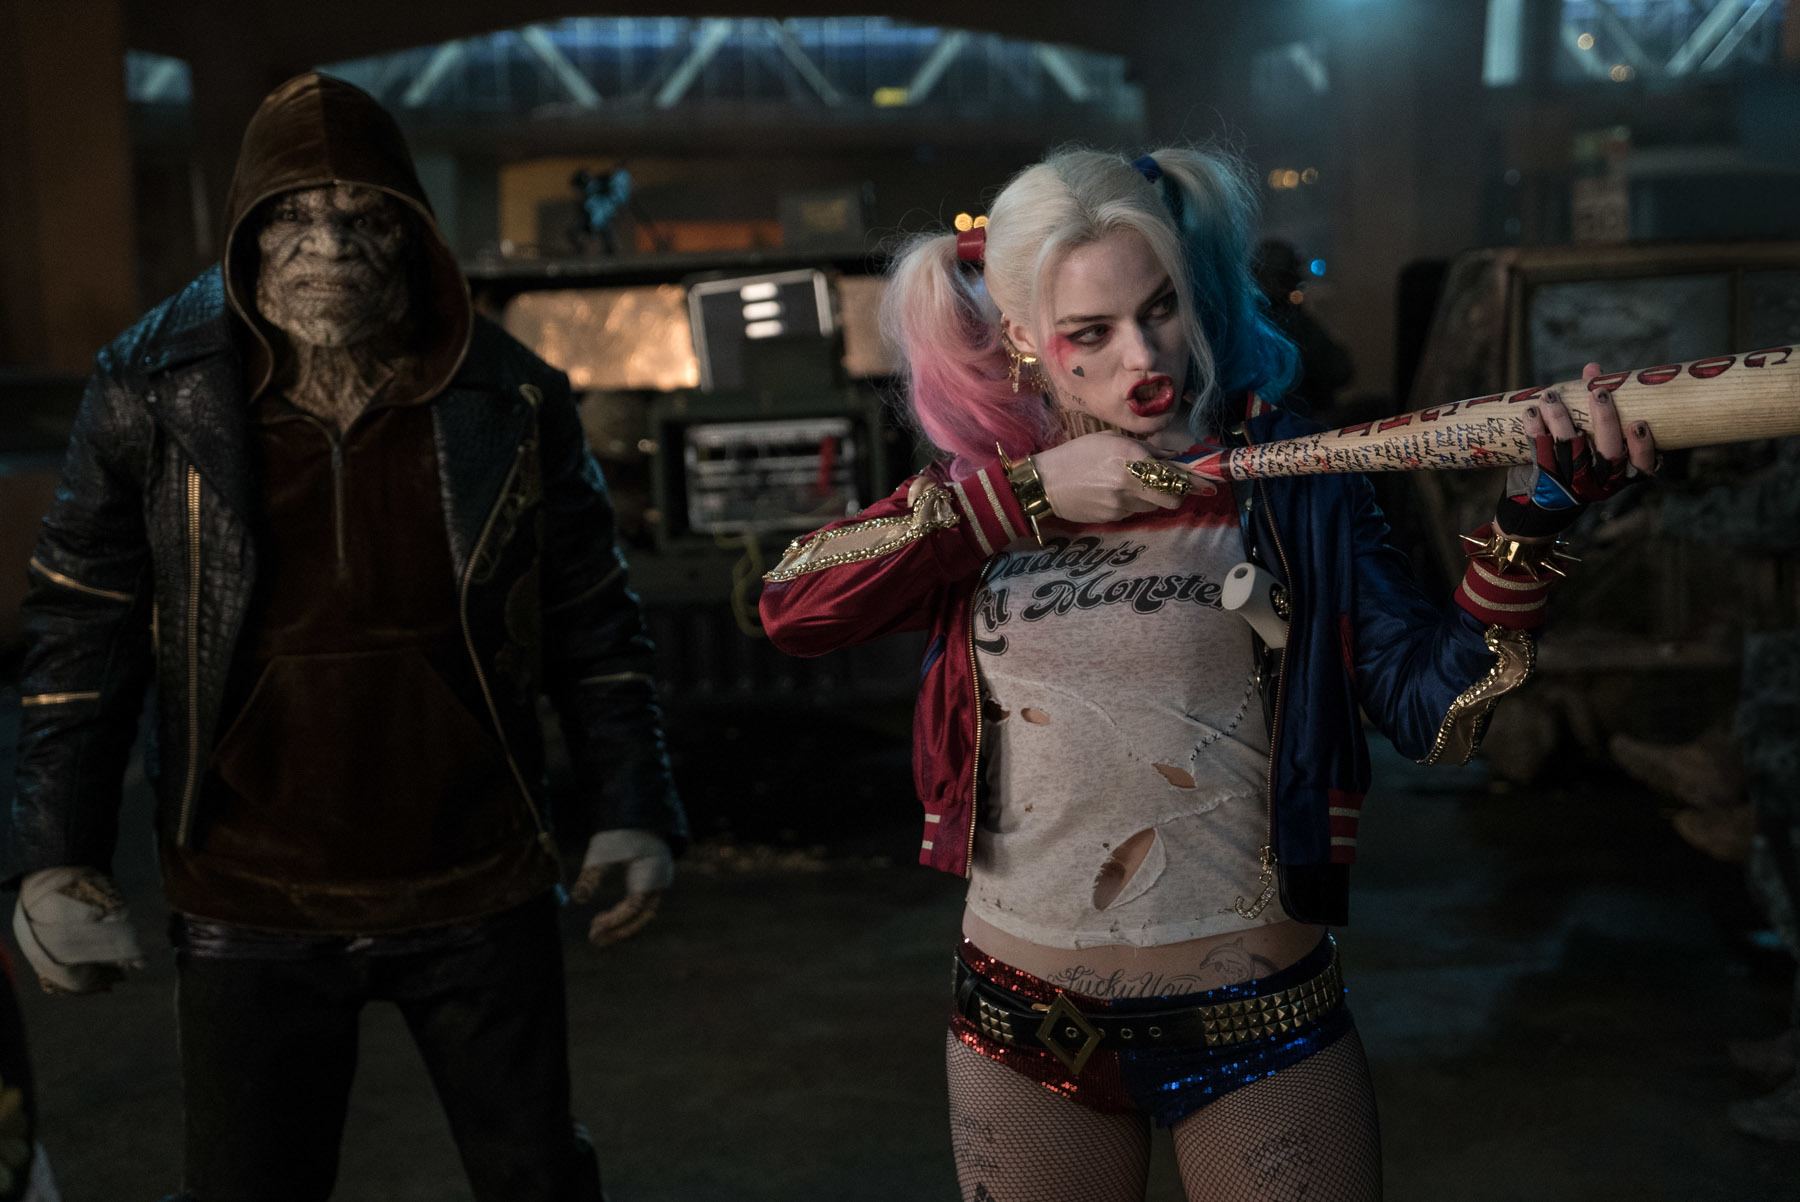 Margot Robbie on her anxieties about portraying Harley: